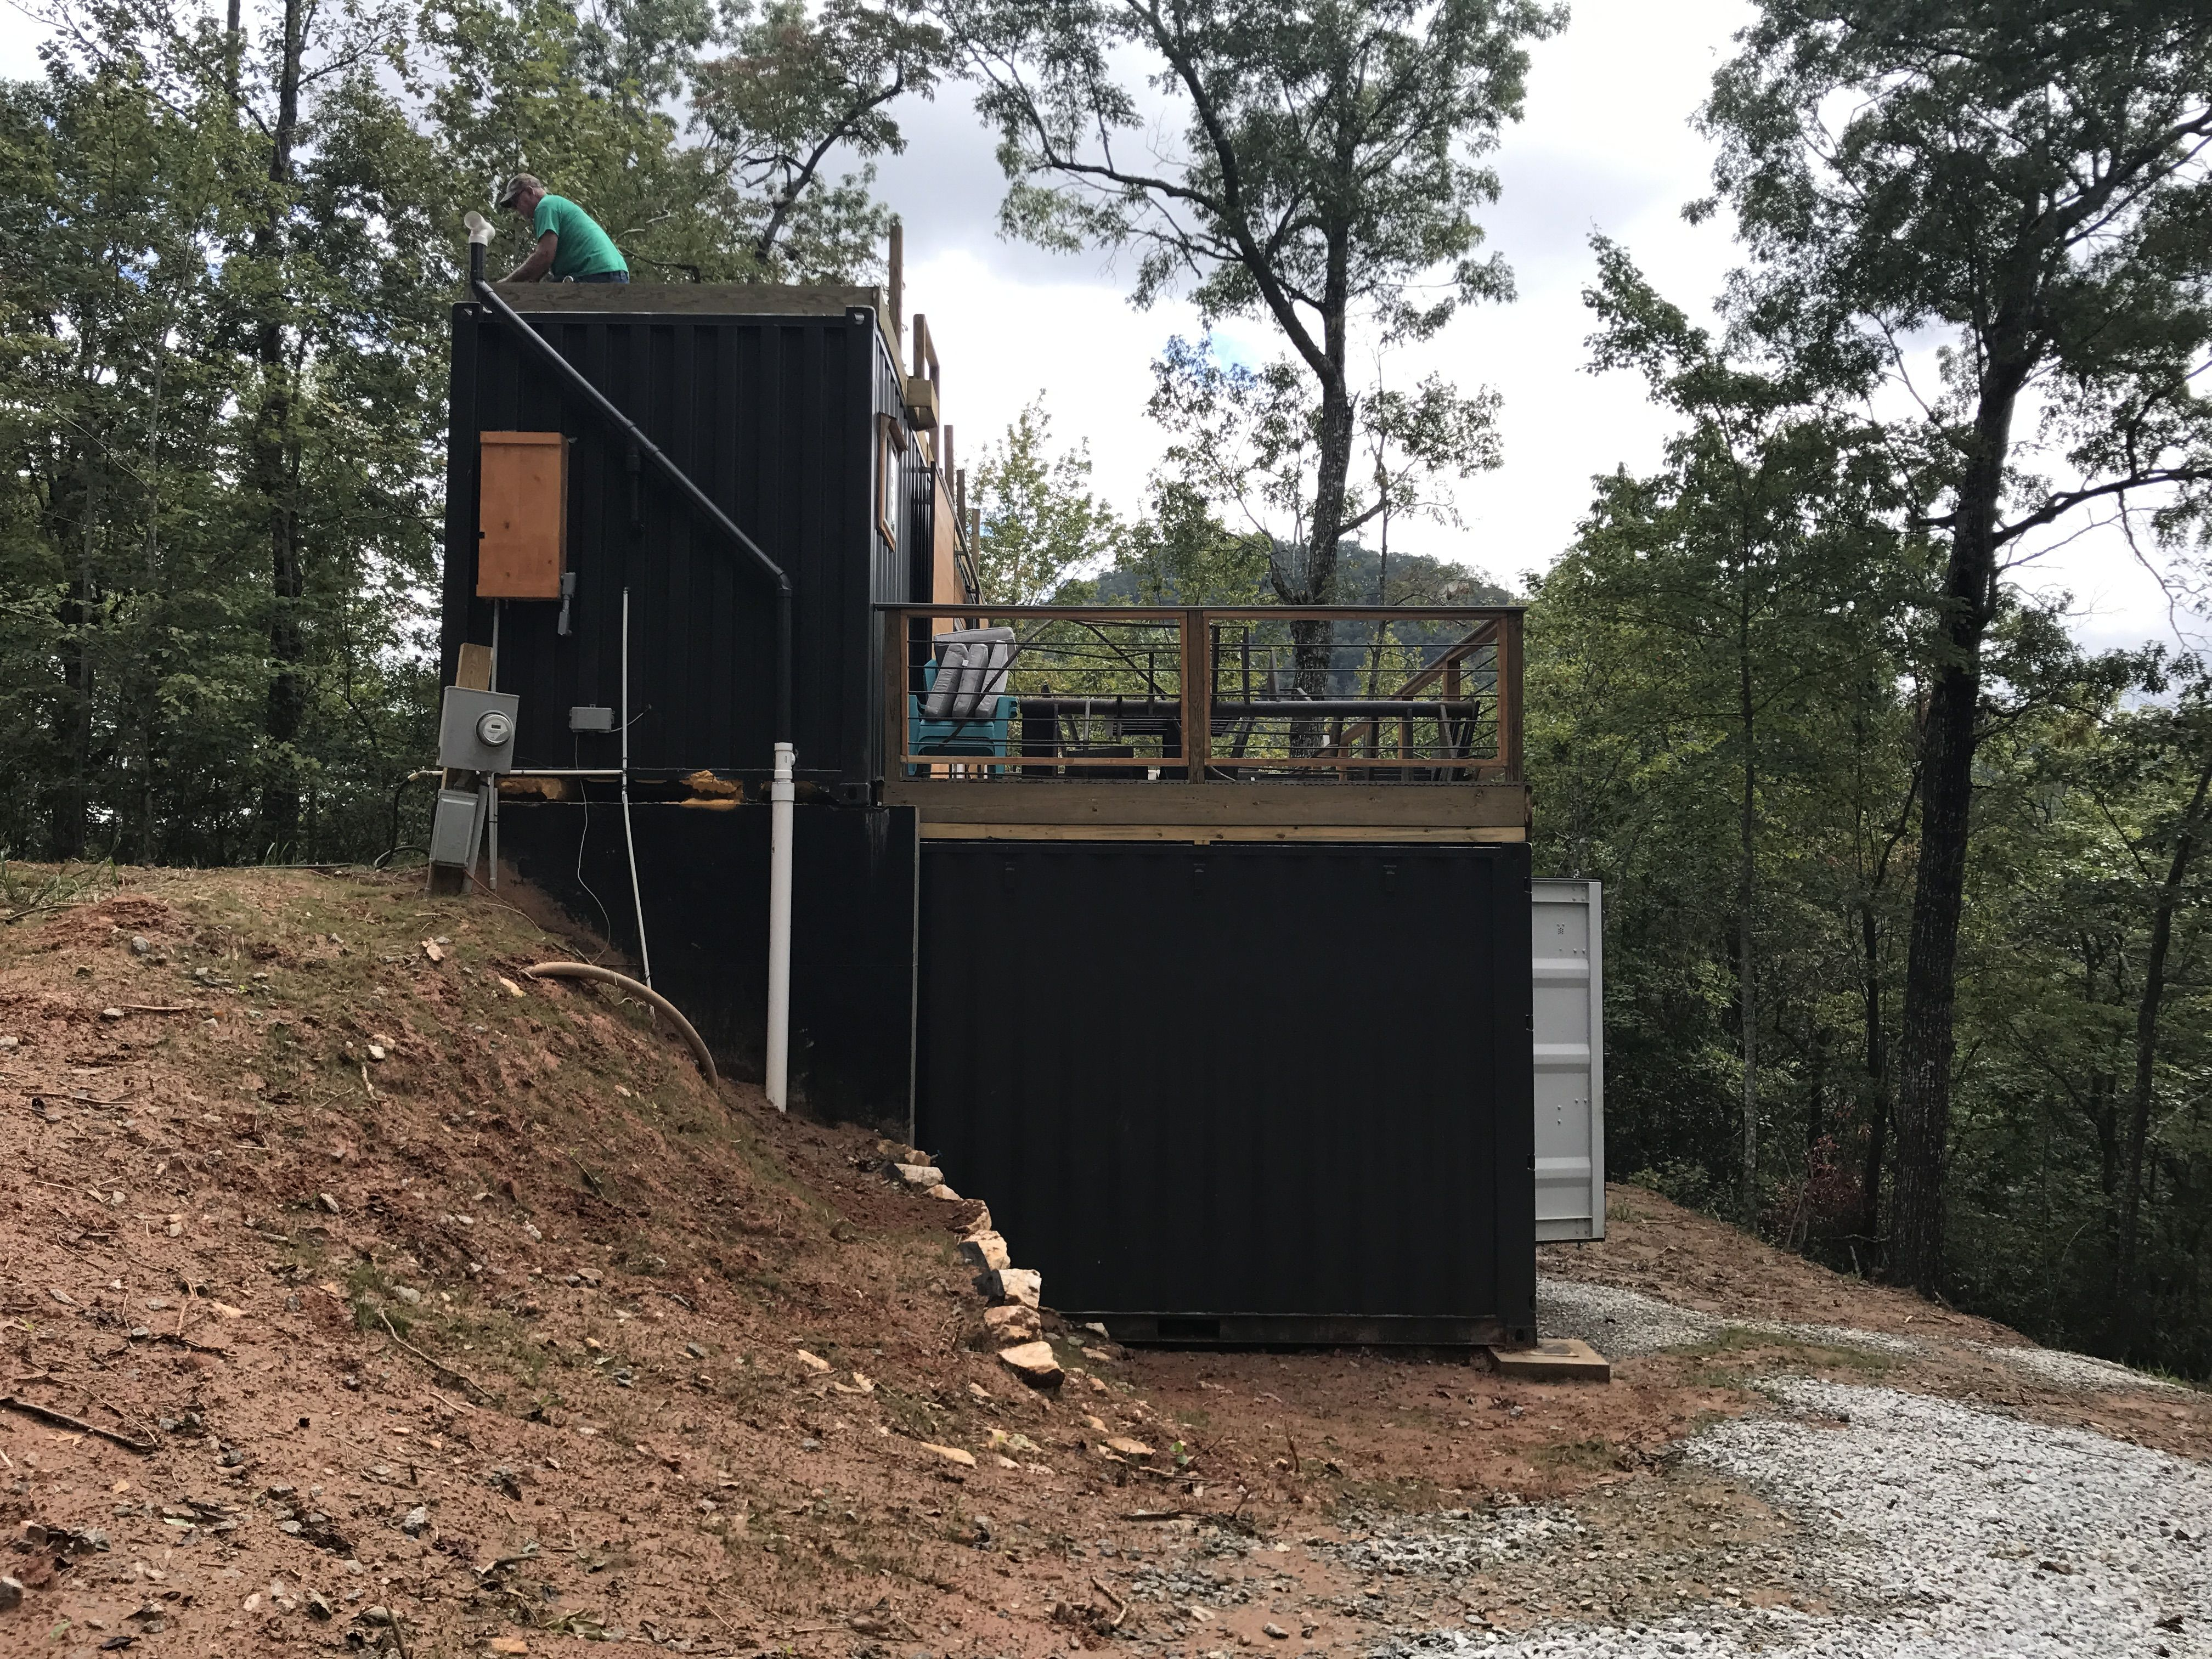 A few of the side of the appalachian mountain container